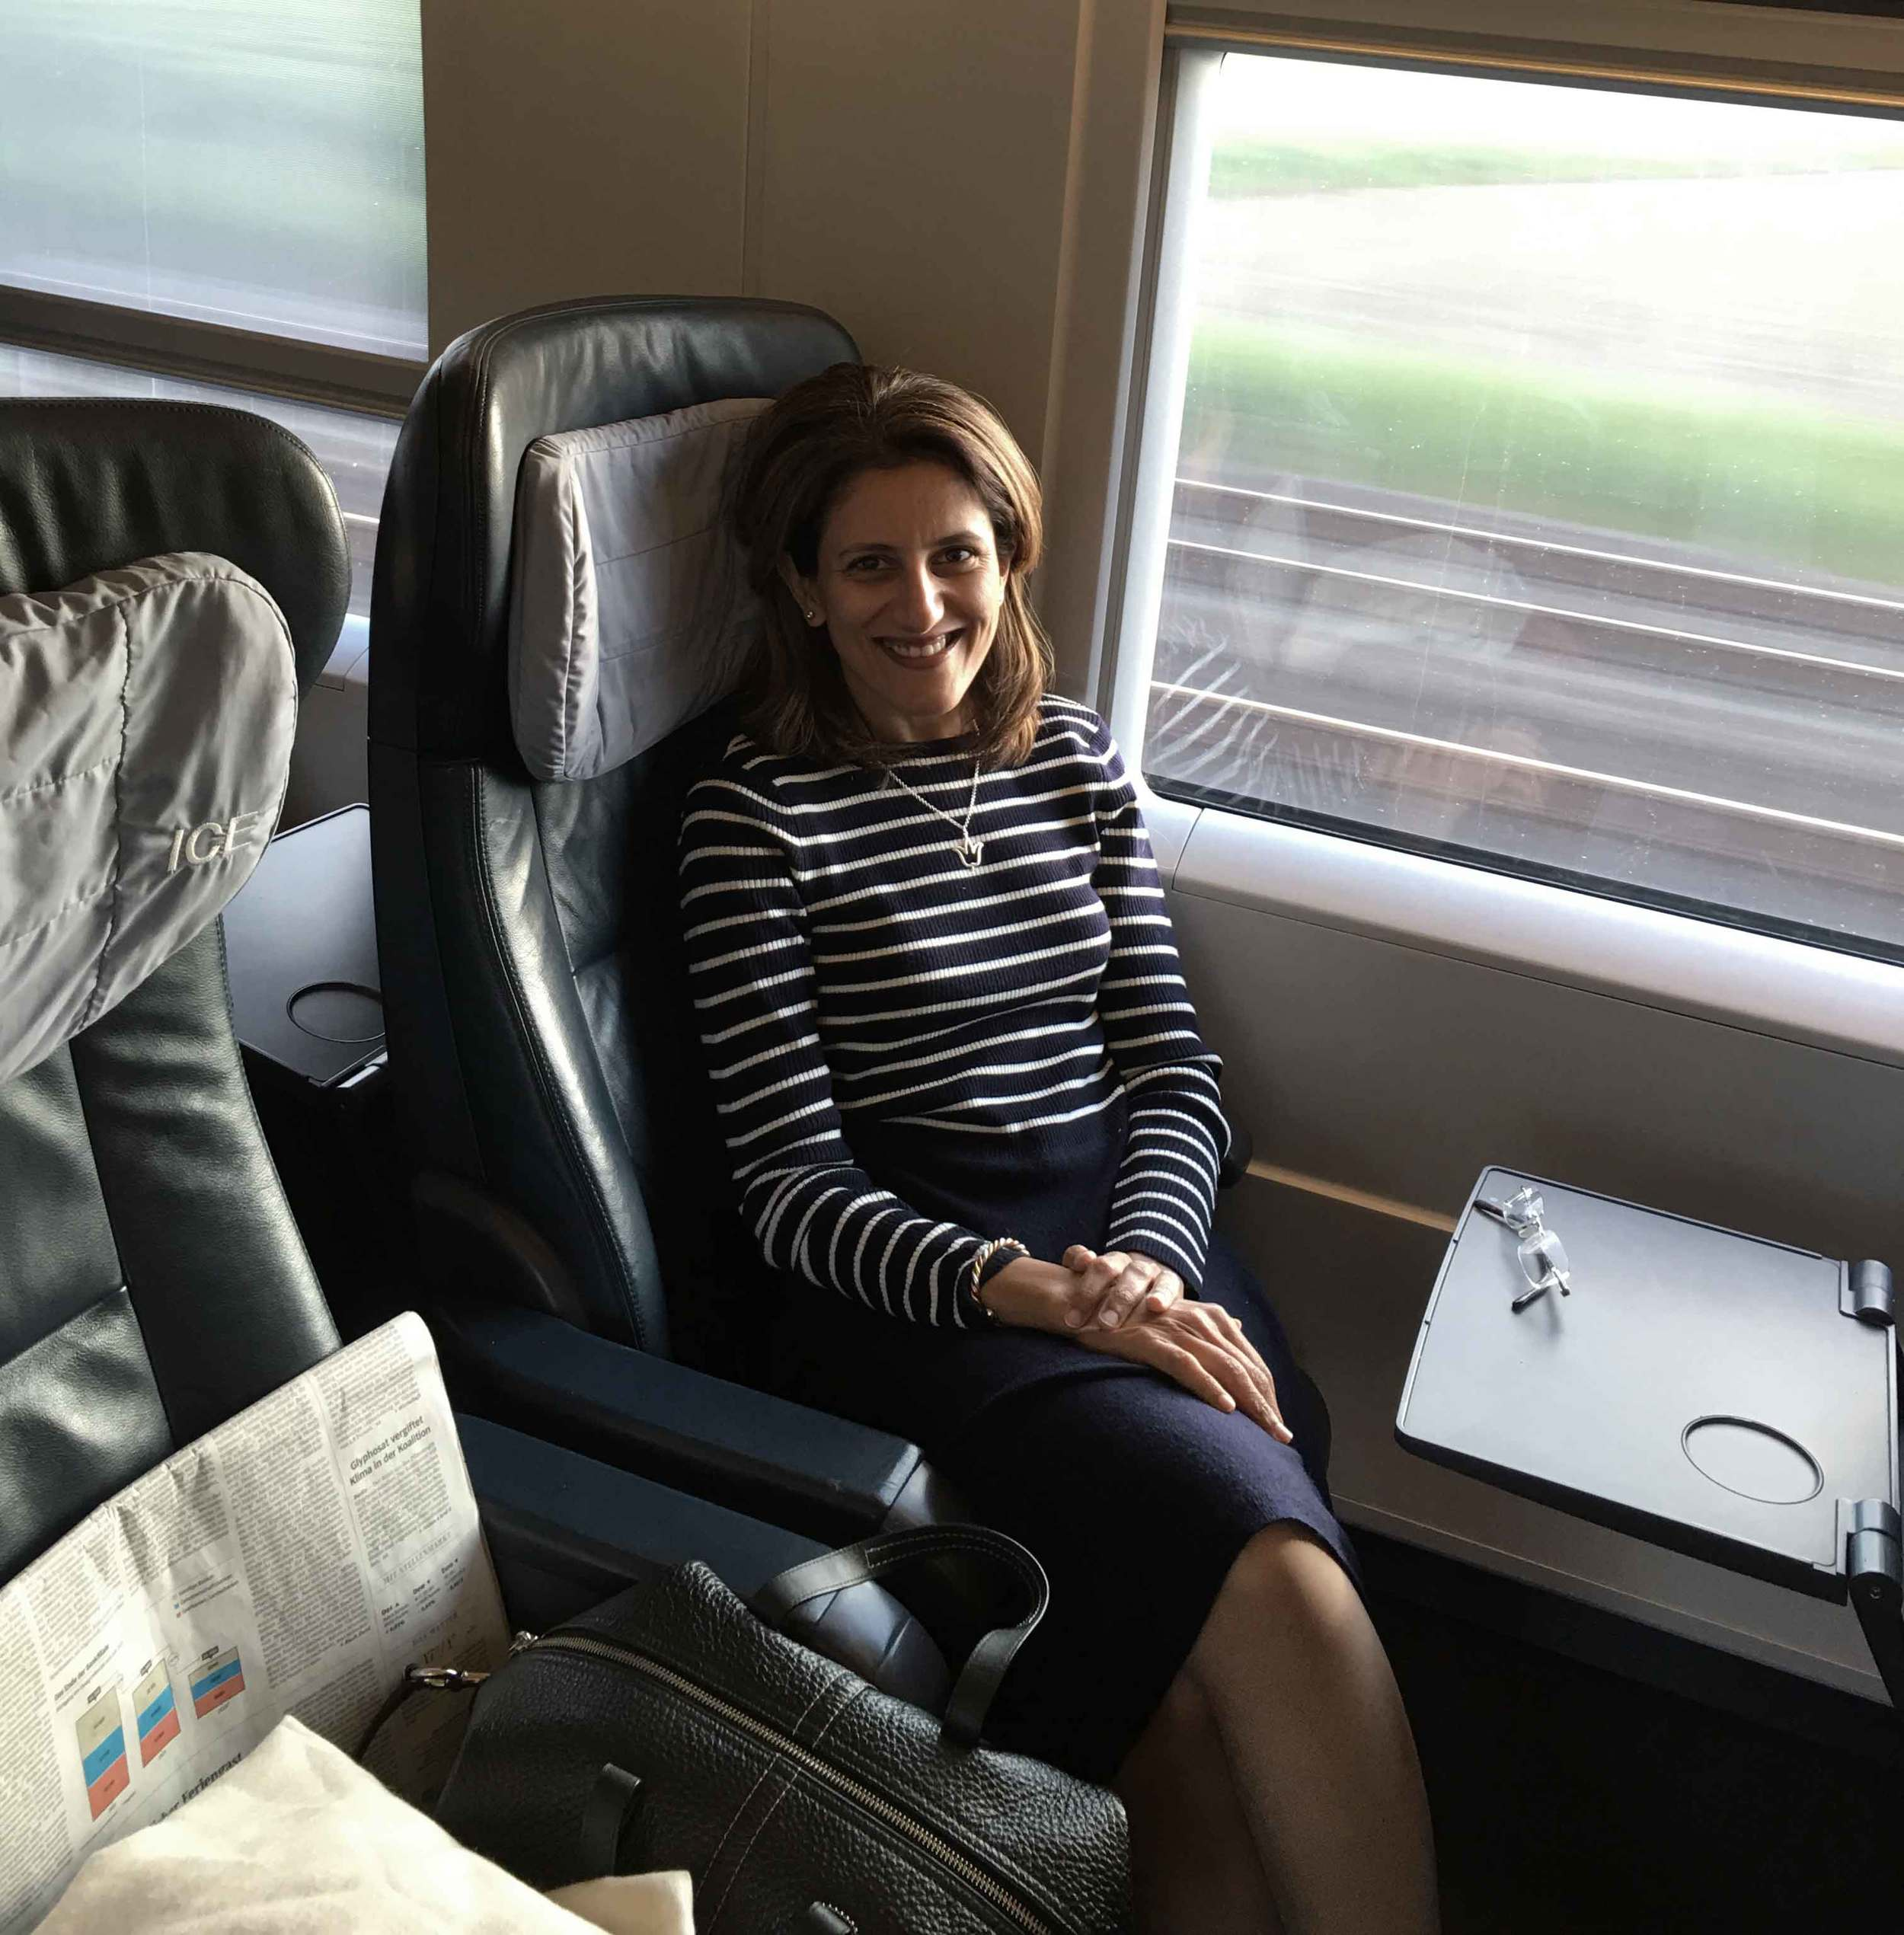 Traveling by Inter City Express, the high speed German rail, Deutsche Bahn, Germany. Image©sourcingstyle.com